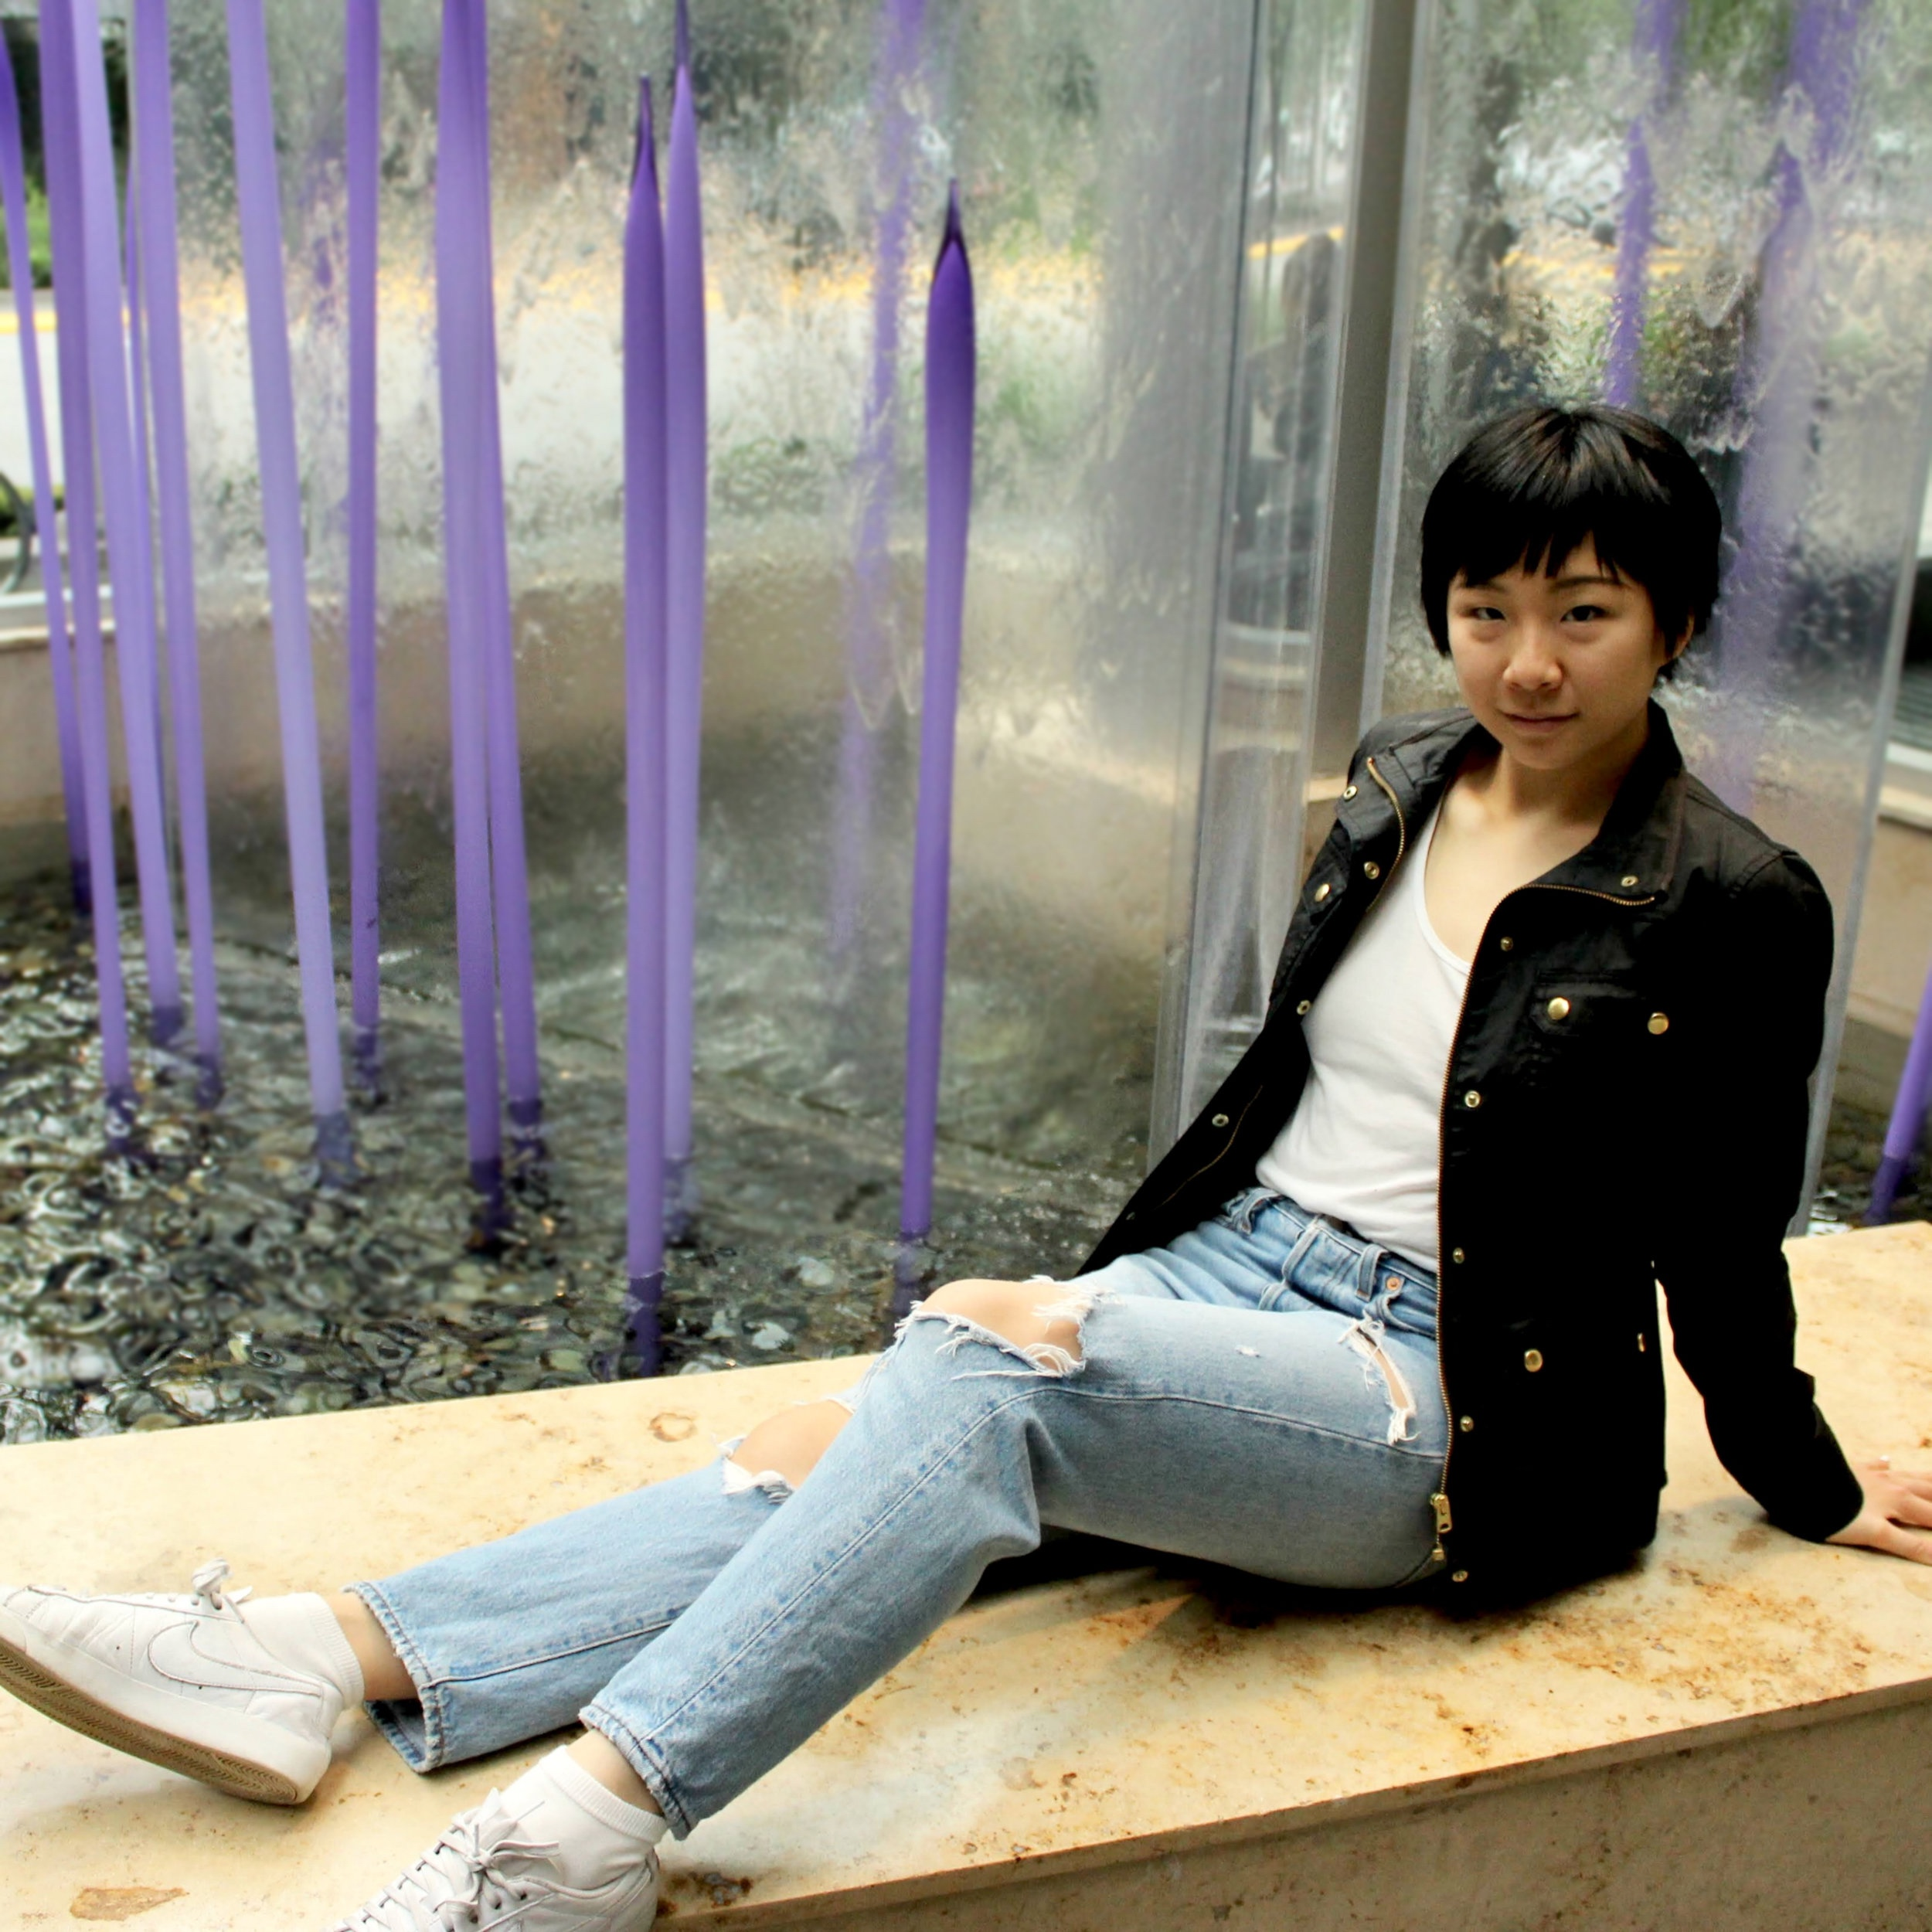 Originally from Seattle, Ana Chen is a freshman at Stanford University. Her writing has been recognized at international and national levels by the National Scholastic Art and Writing Awards, The Adroit Journal, the Claremont Review, Polyphony Literary Magazine, the New York Pitch Conference, and others. In 2019, she founded It's Real ( https://www.itsrealmagazine.org/ ), an online magazine seeking to destigmatize mental health issues in Asian American communities, followed by Punderings ( https://www.pxnderings.com/ ), a blog discussing art and activism, womanhood, college, and teenage angst.